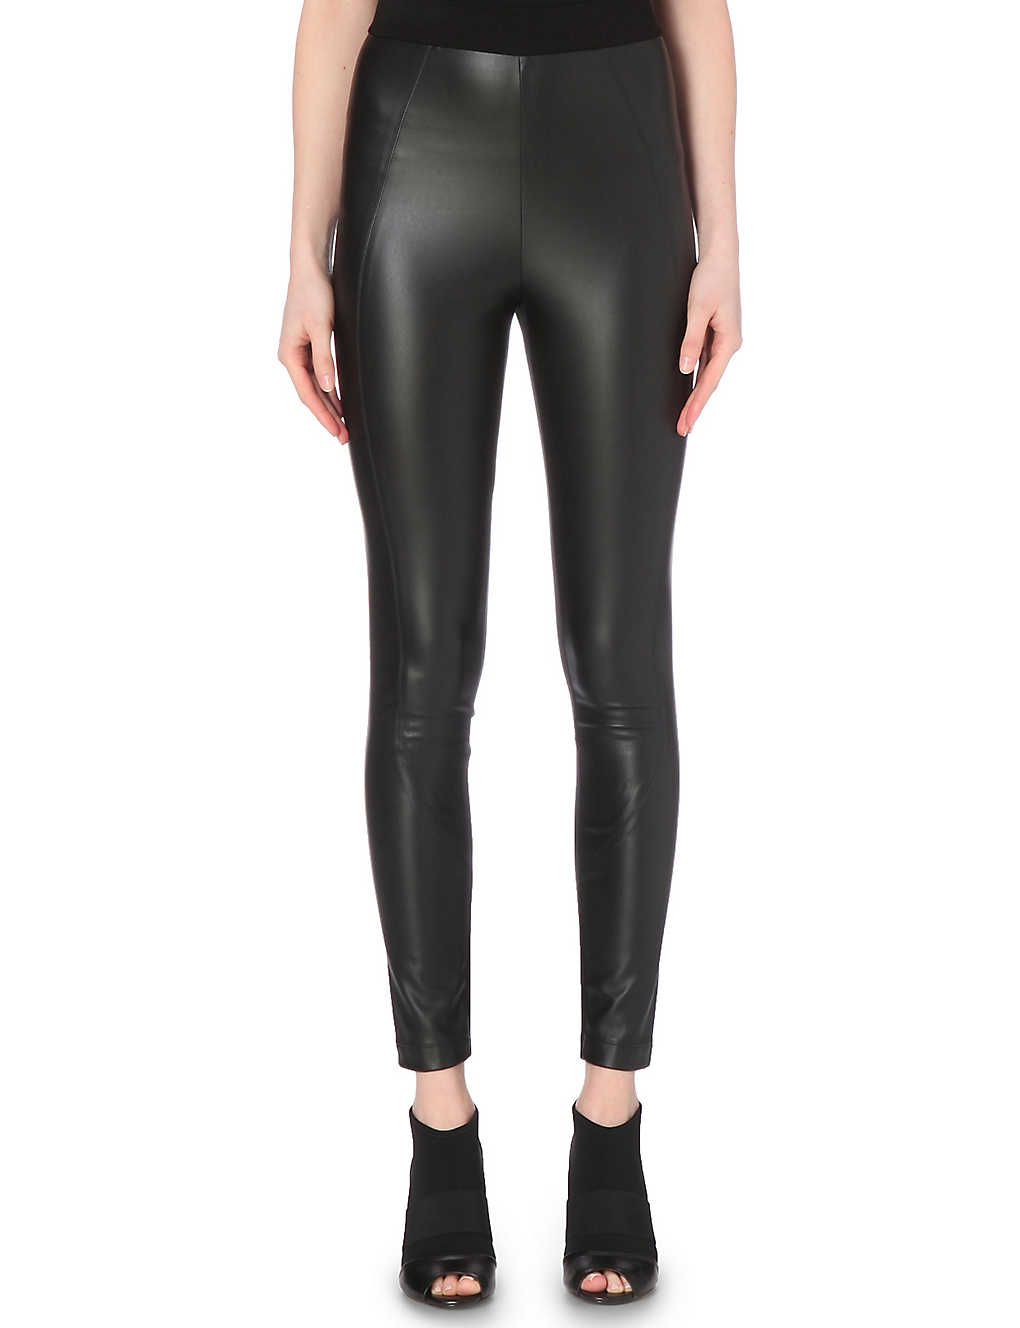 acf66f5187 KAREN MILLEN - High-waisted faux-leather leggings | Selfridges.com